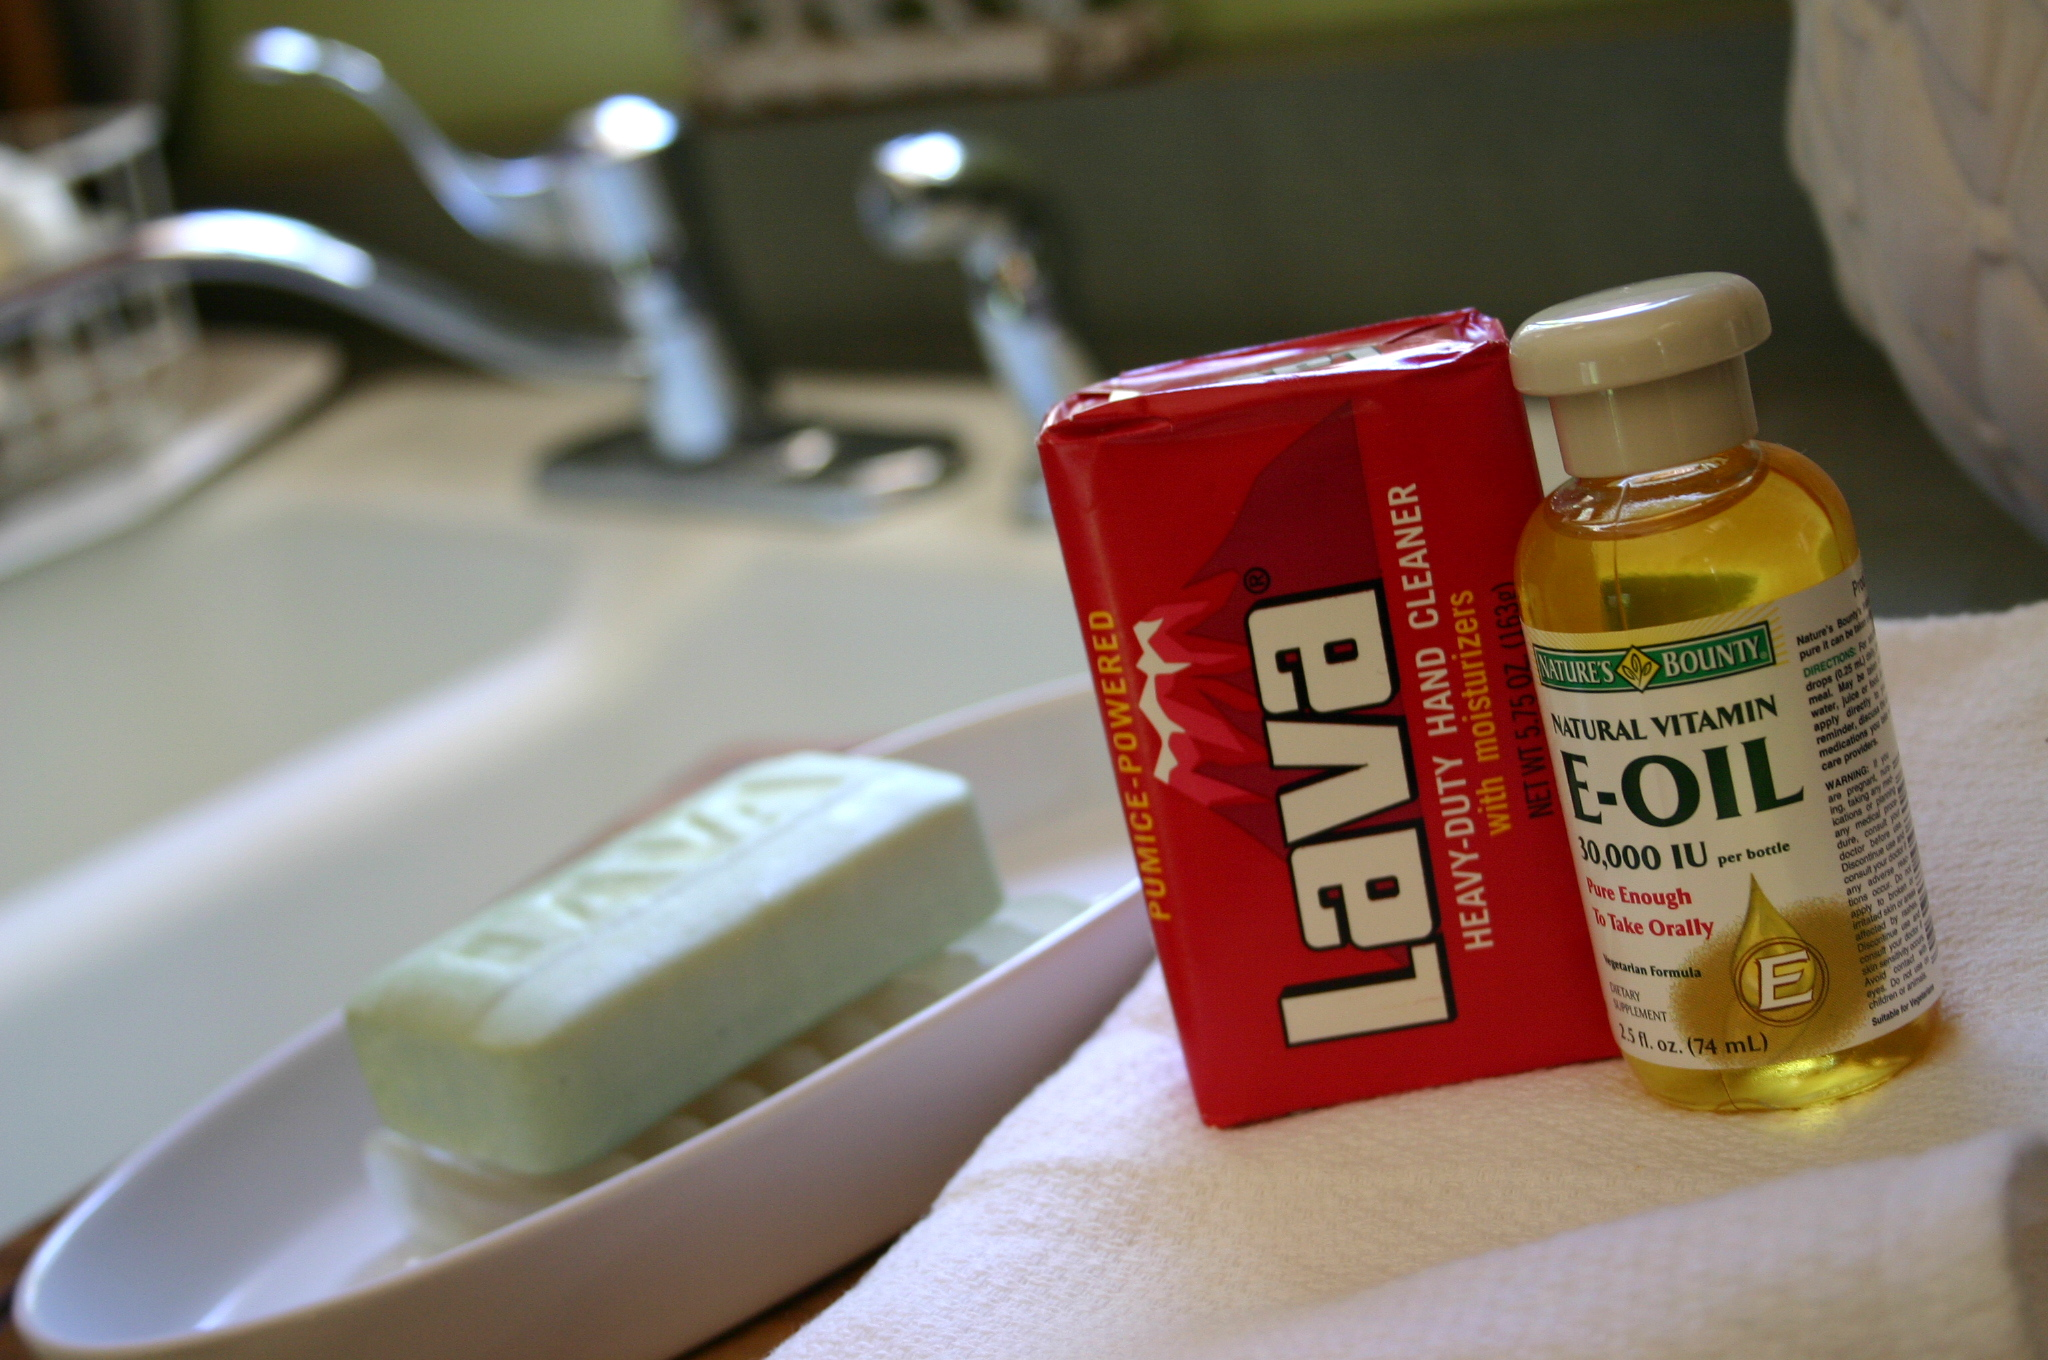 A quick fix for hardworking hands - Lava soap and vitamin e oil.